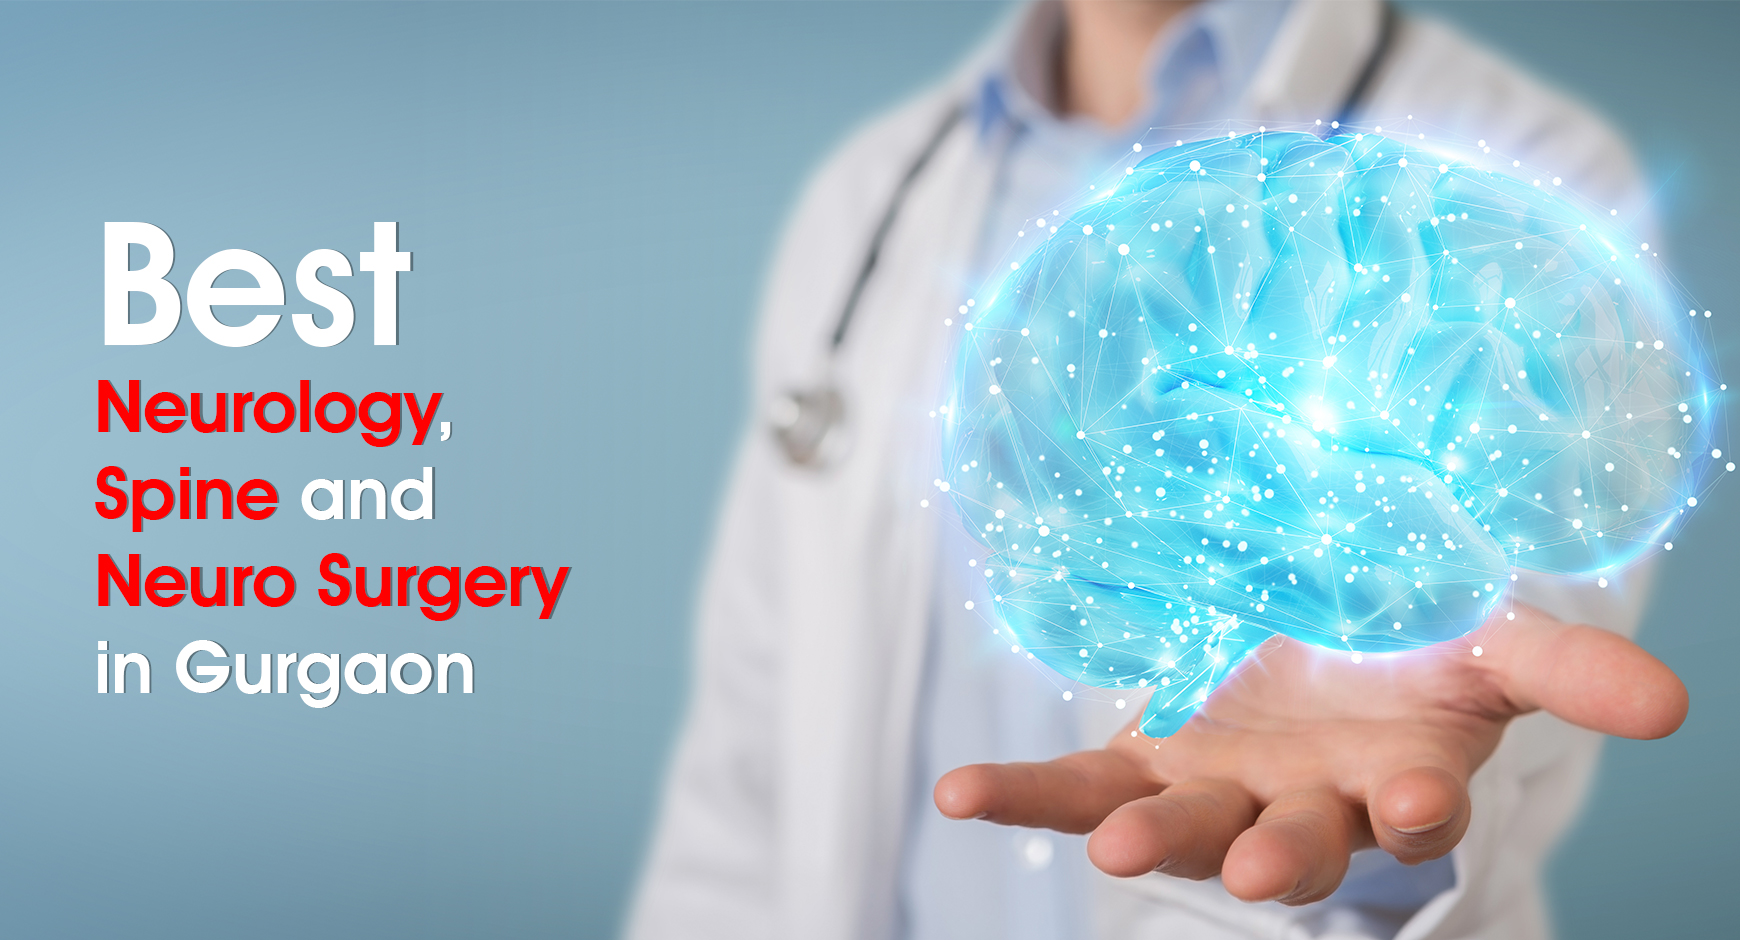 Best neurology, spine and neuro surgery in Gurgaon- Signature Hospital